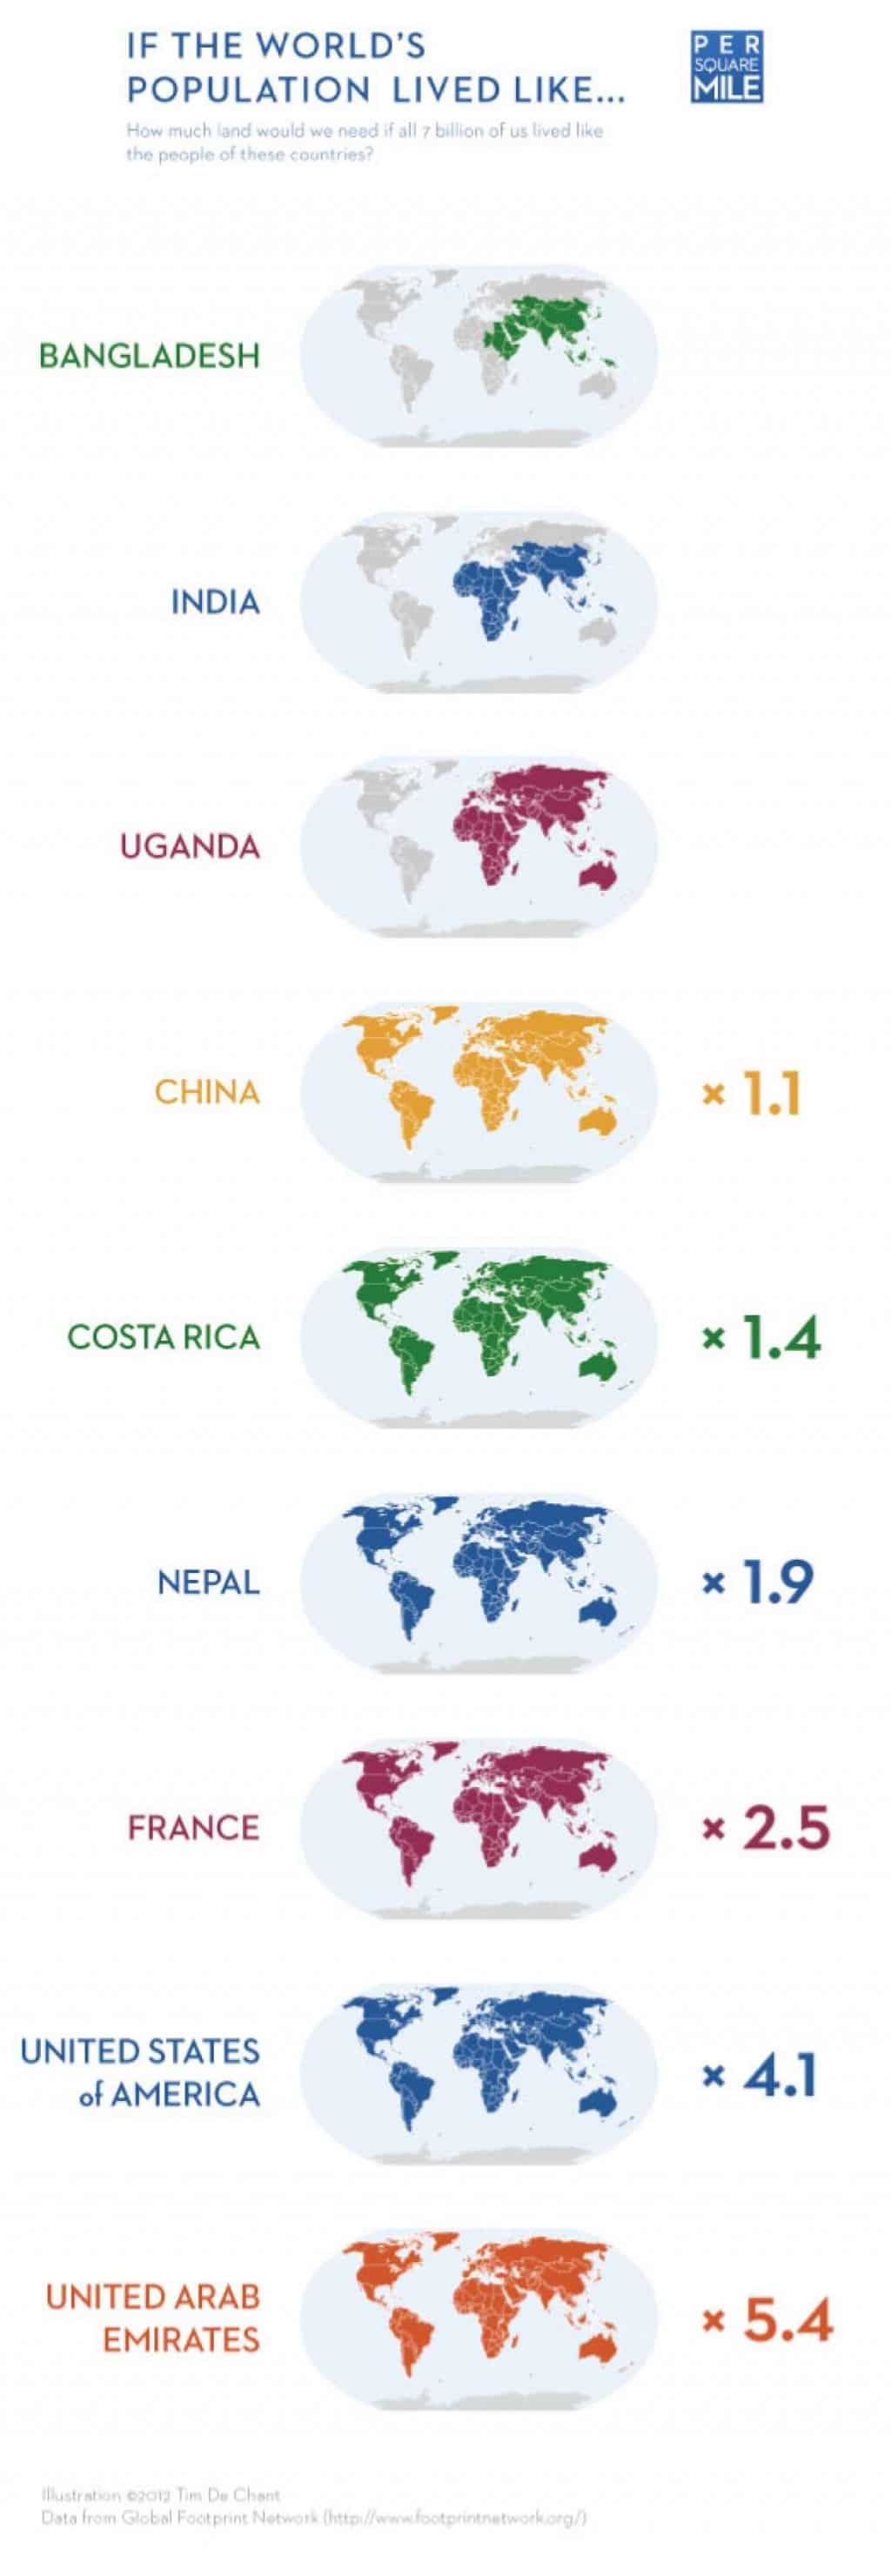 If the world's population lived like